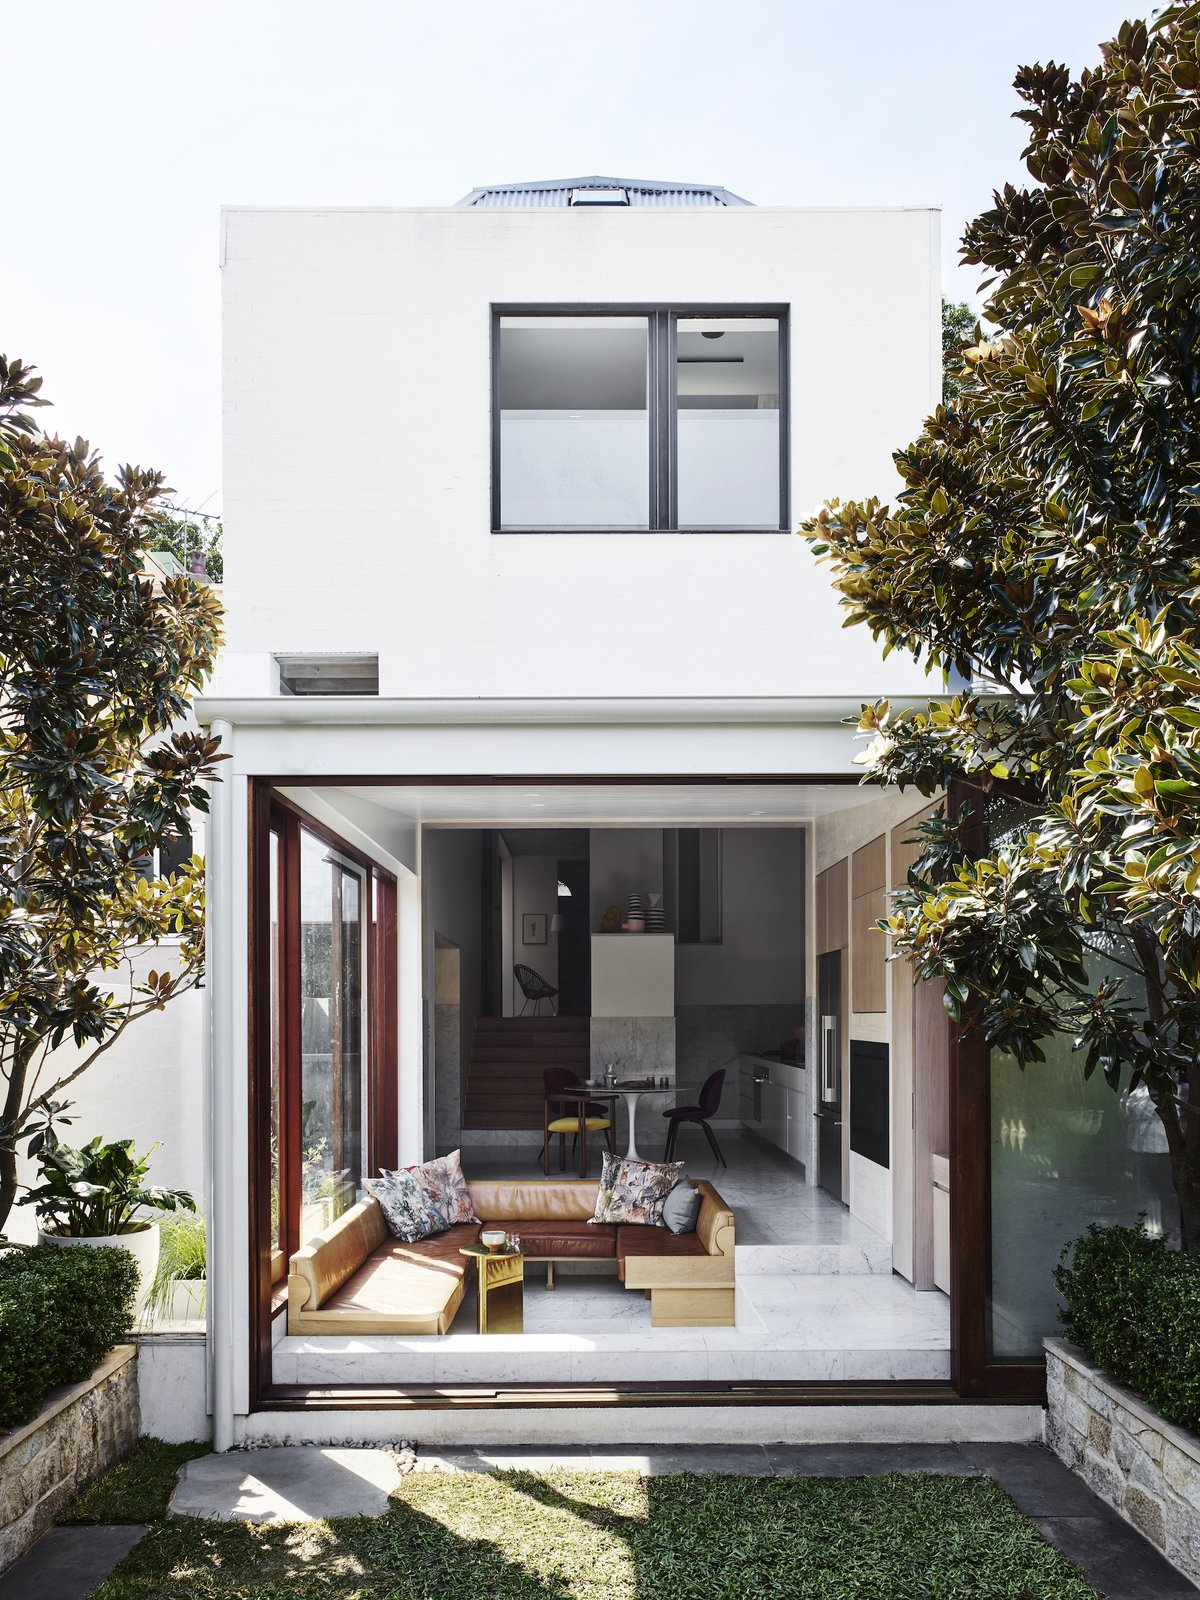 Exterior of Bondi Junction House by Alexander & CO.